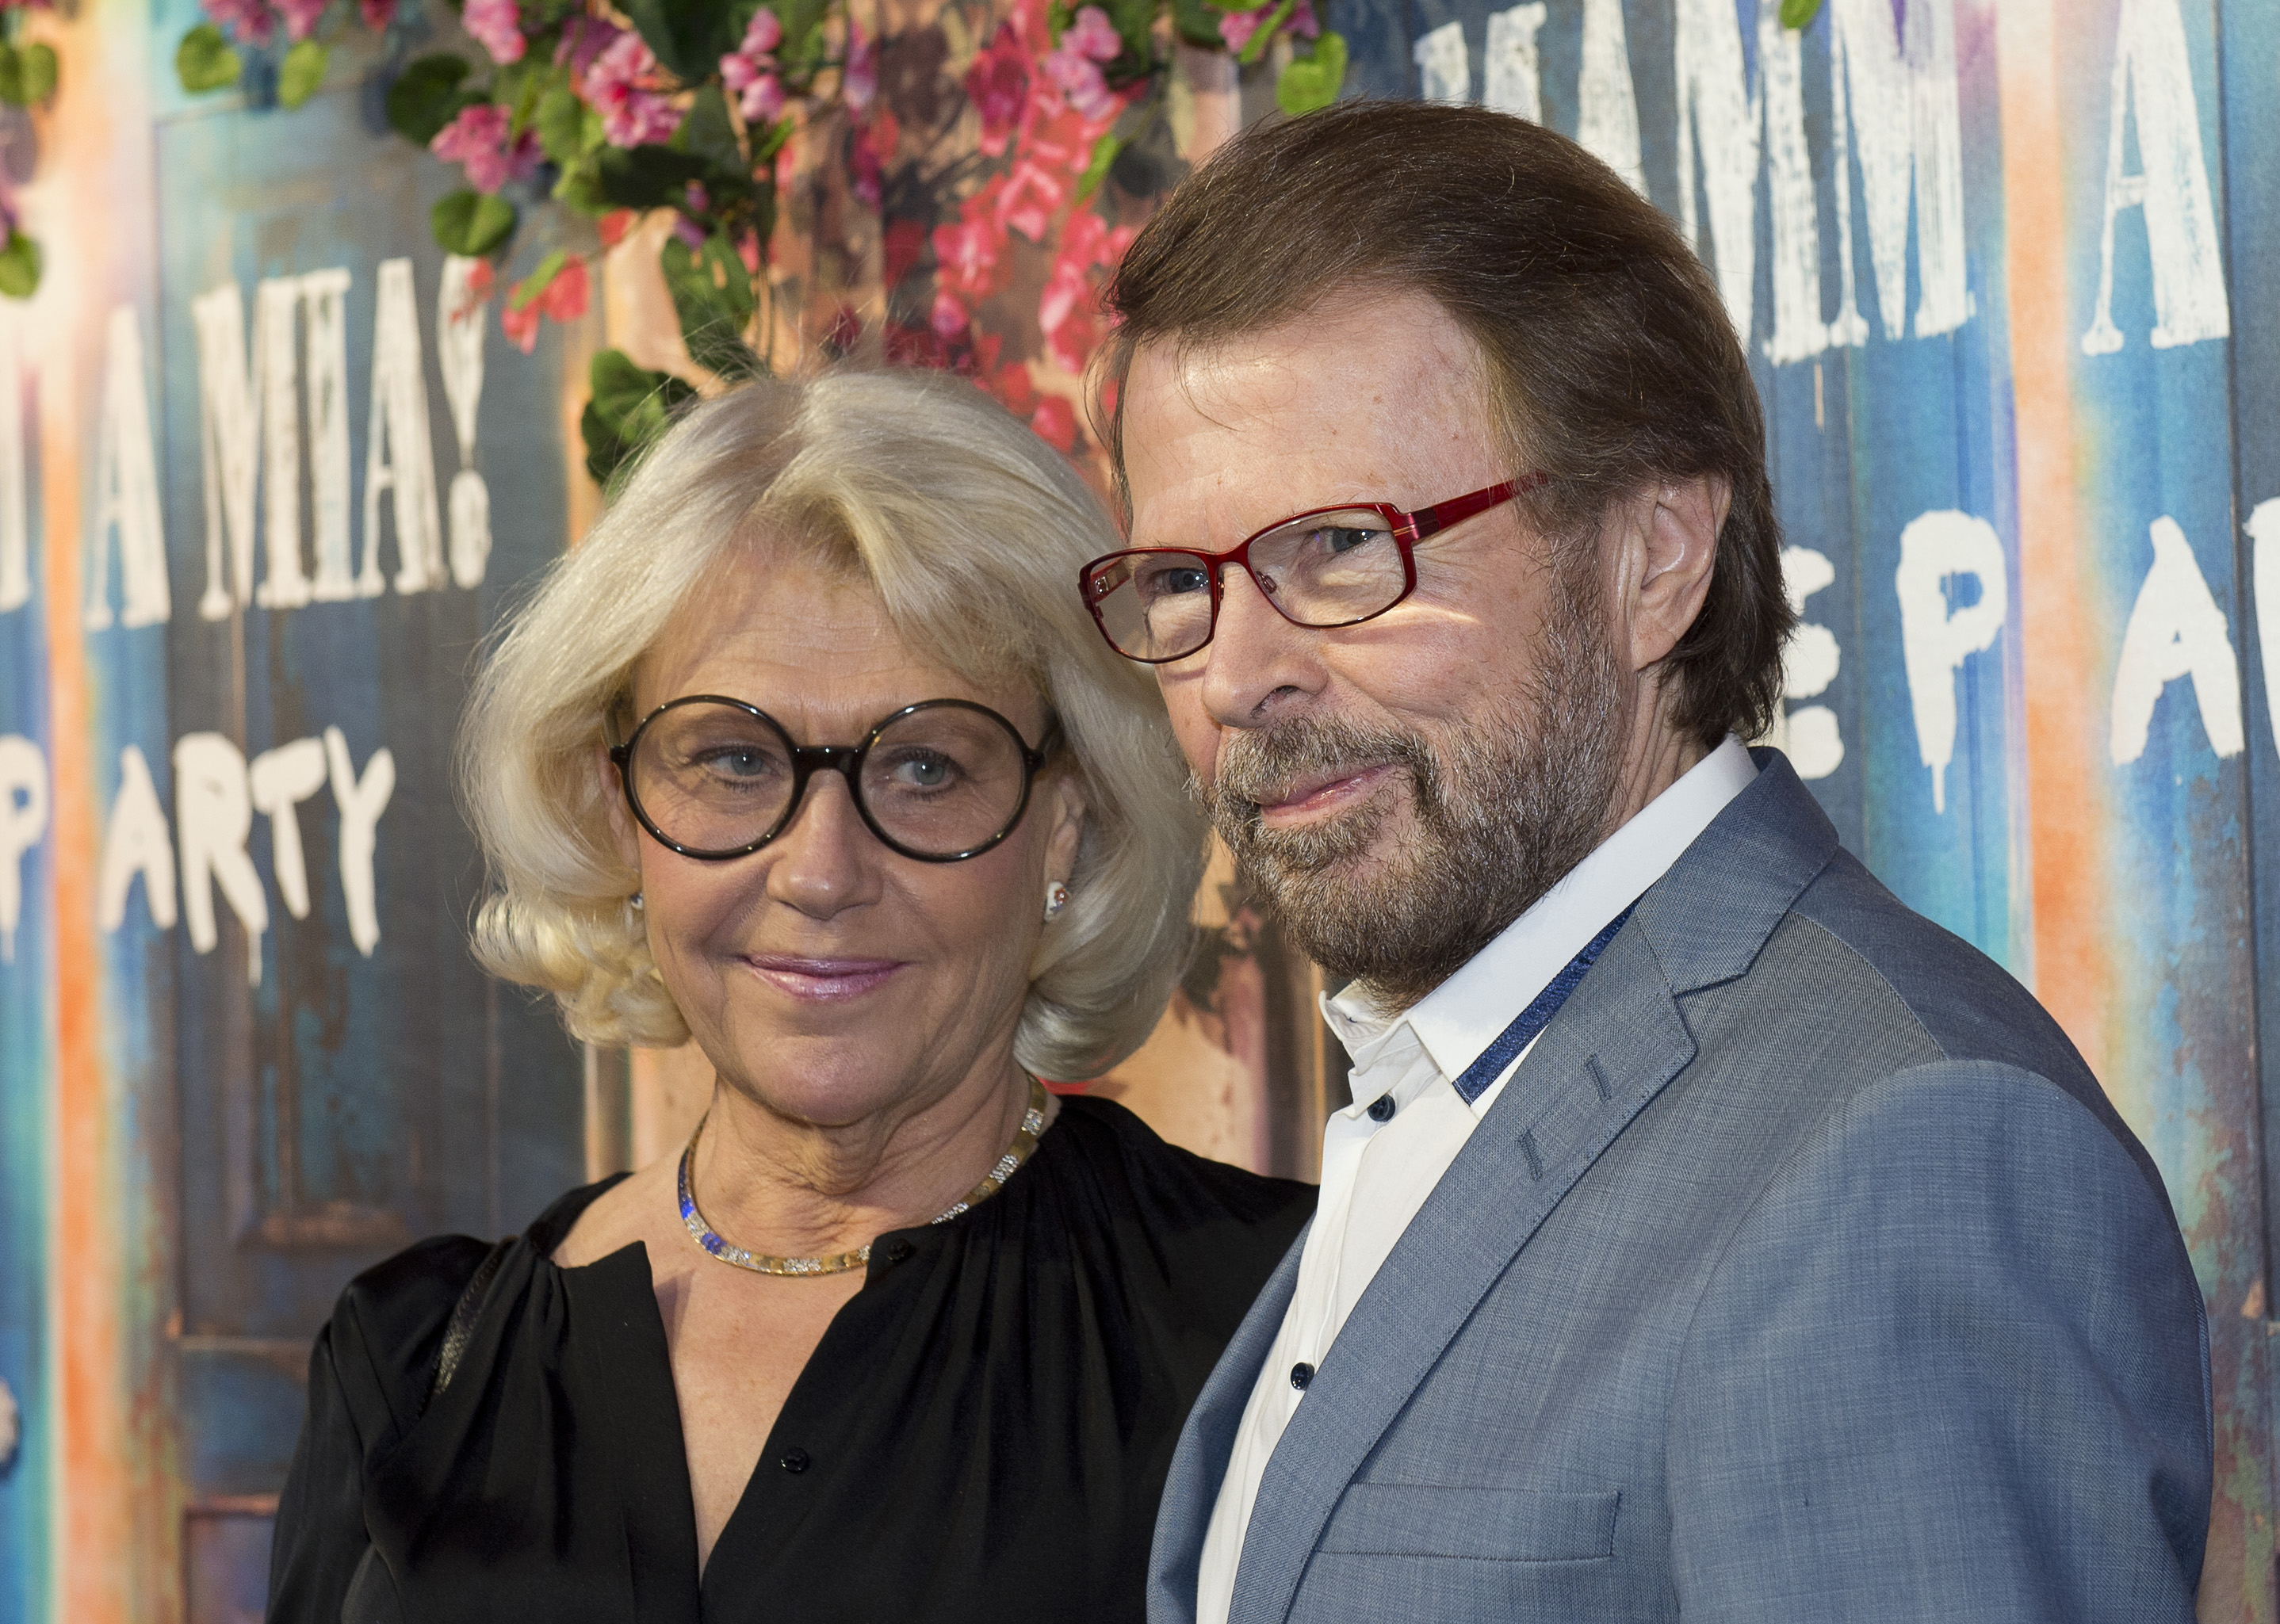 Bjorn Ulvaeus (R), a member of Swedish disco group ABBA attends the opening of  Mamma Mia! The party  on Jan. 20, 2016 in Stockholm.